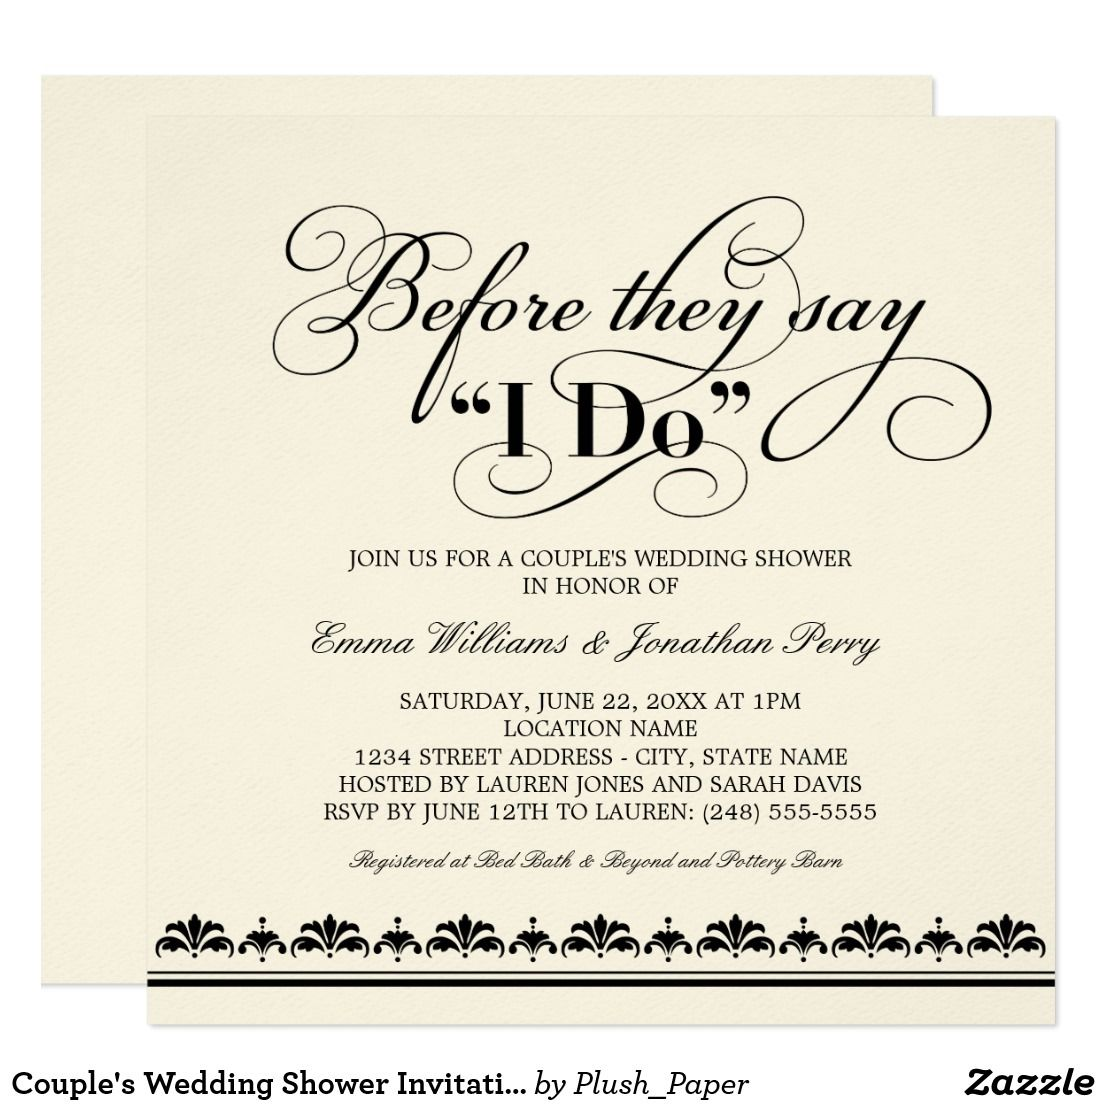 couples wedding shower invitations by plush paper design